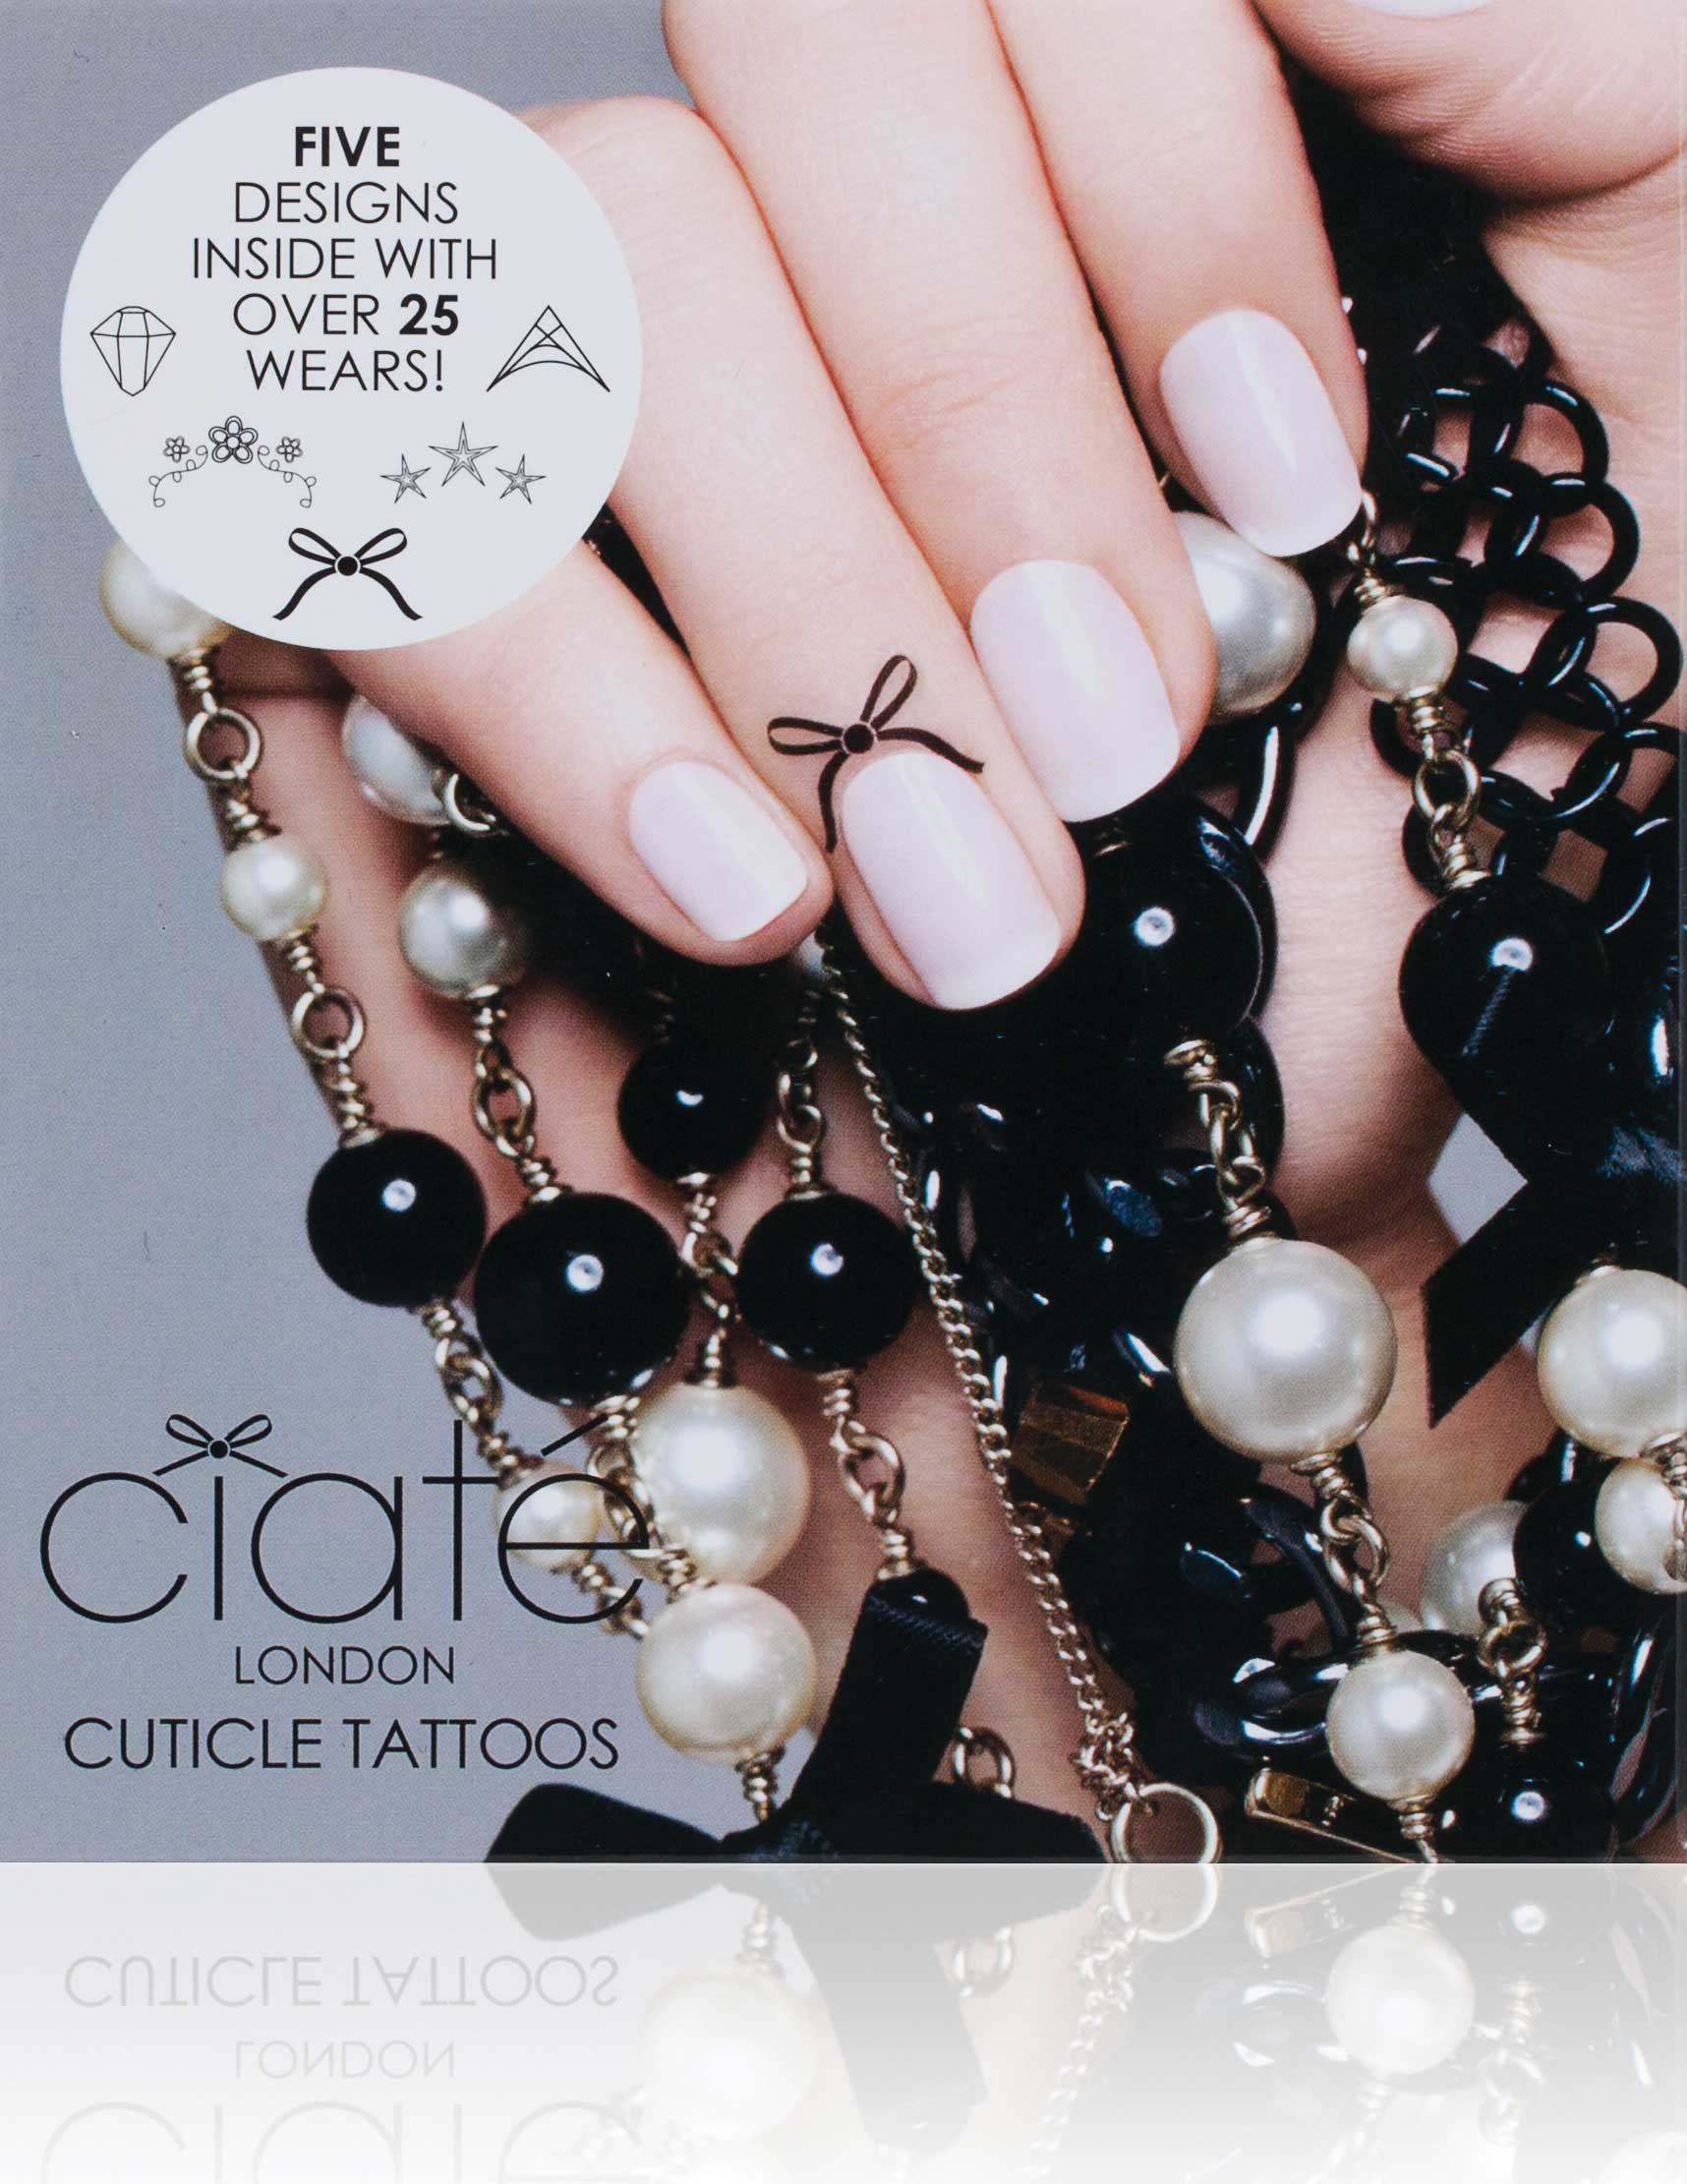 Ciaté's Cuticle Tattoos